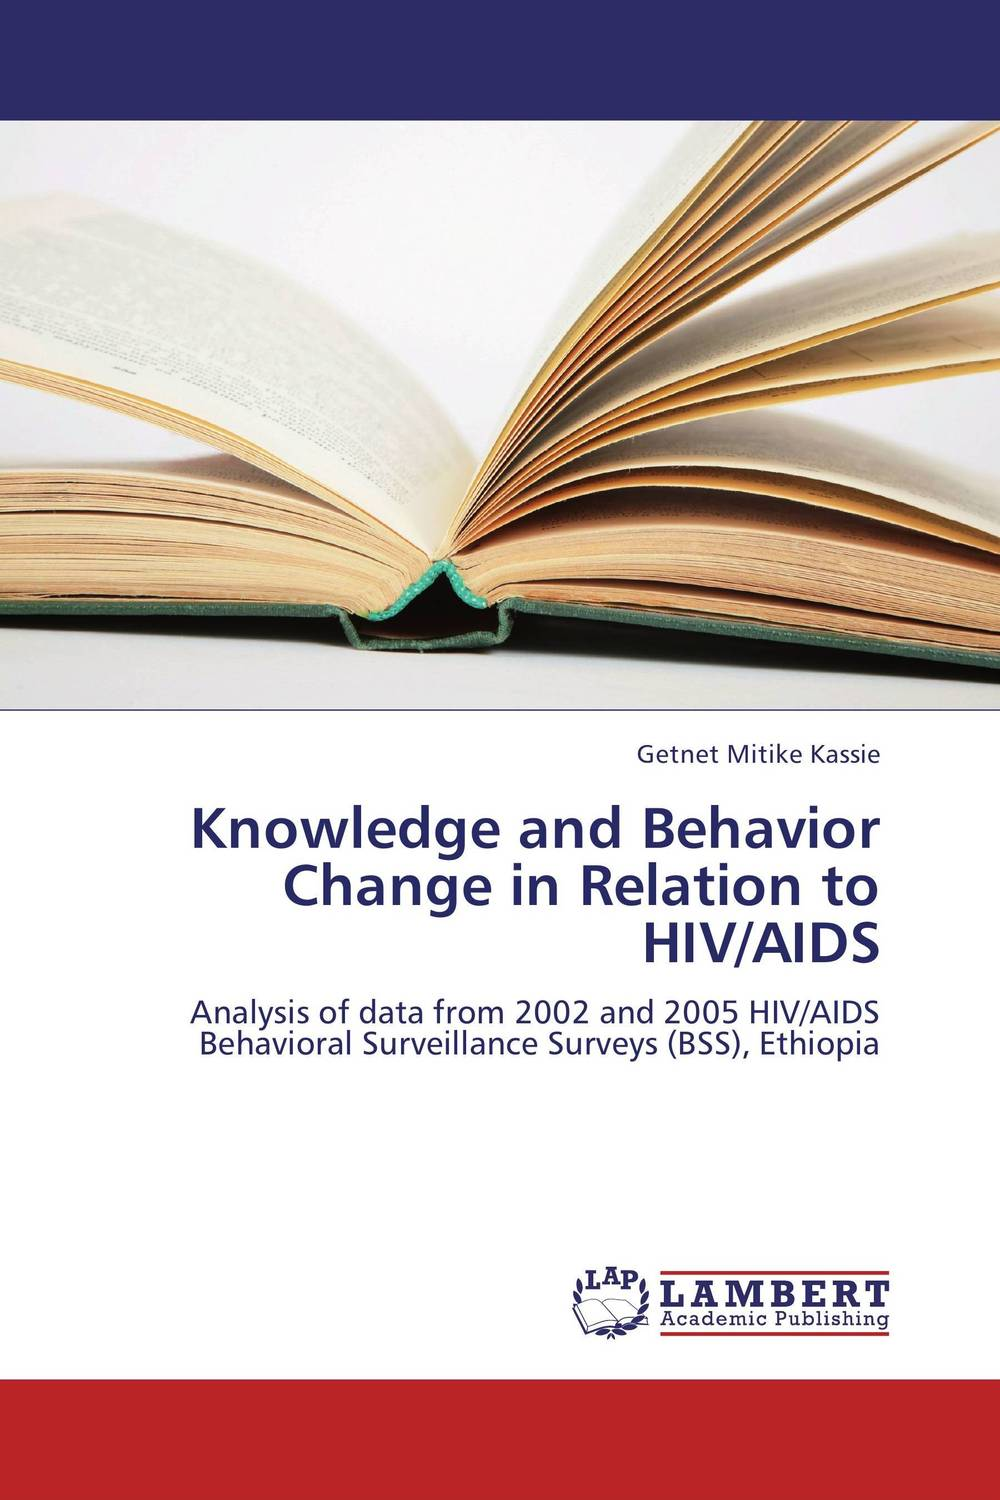 Knowledge and Behavior Change in Relation to HIV/AIDS why sex matters – a darwinian look at human behavior